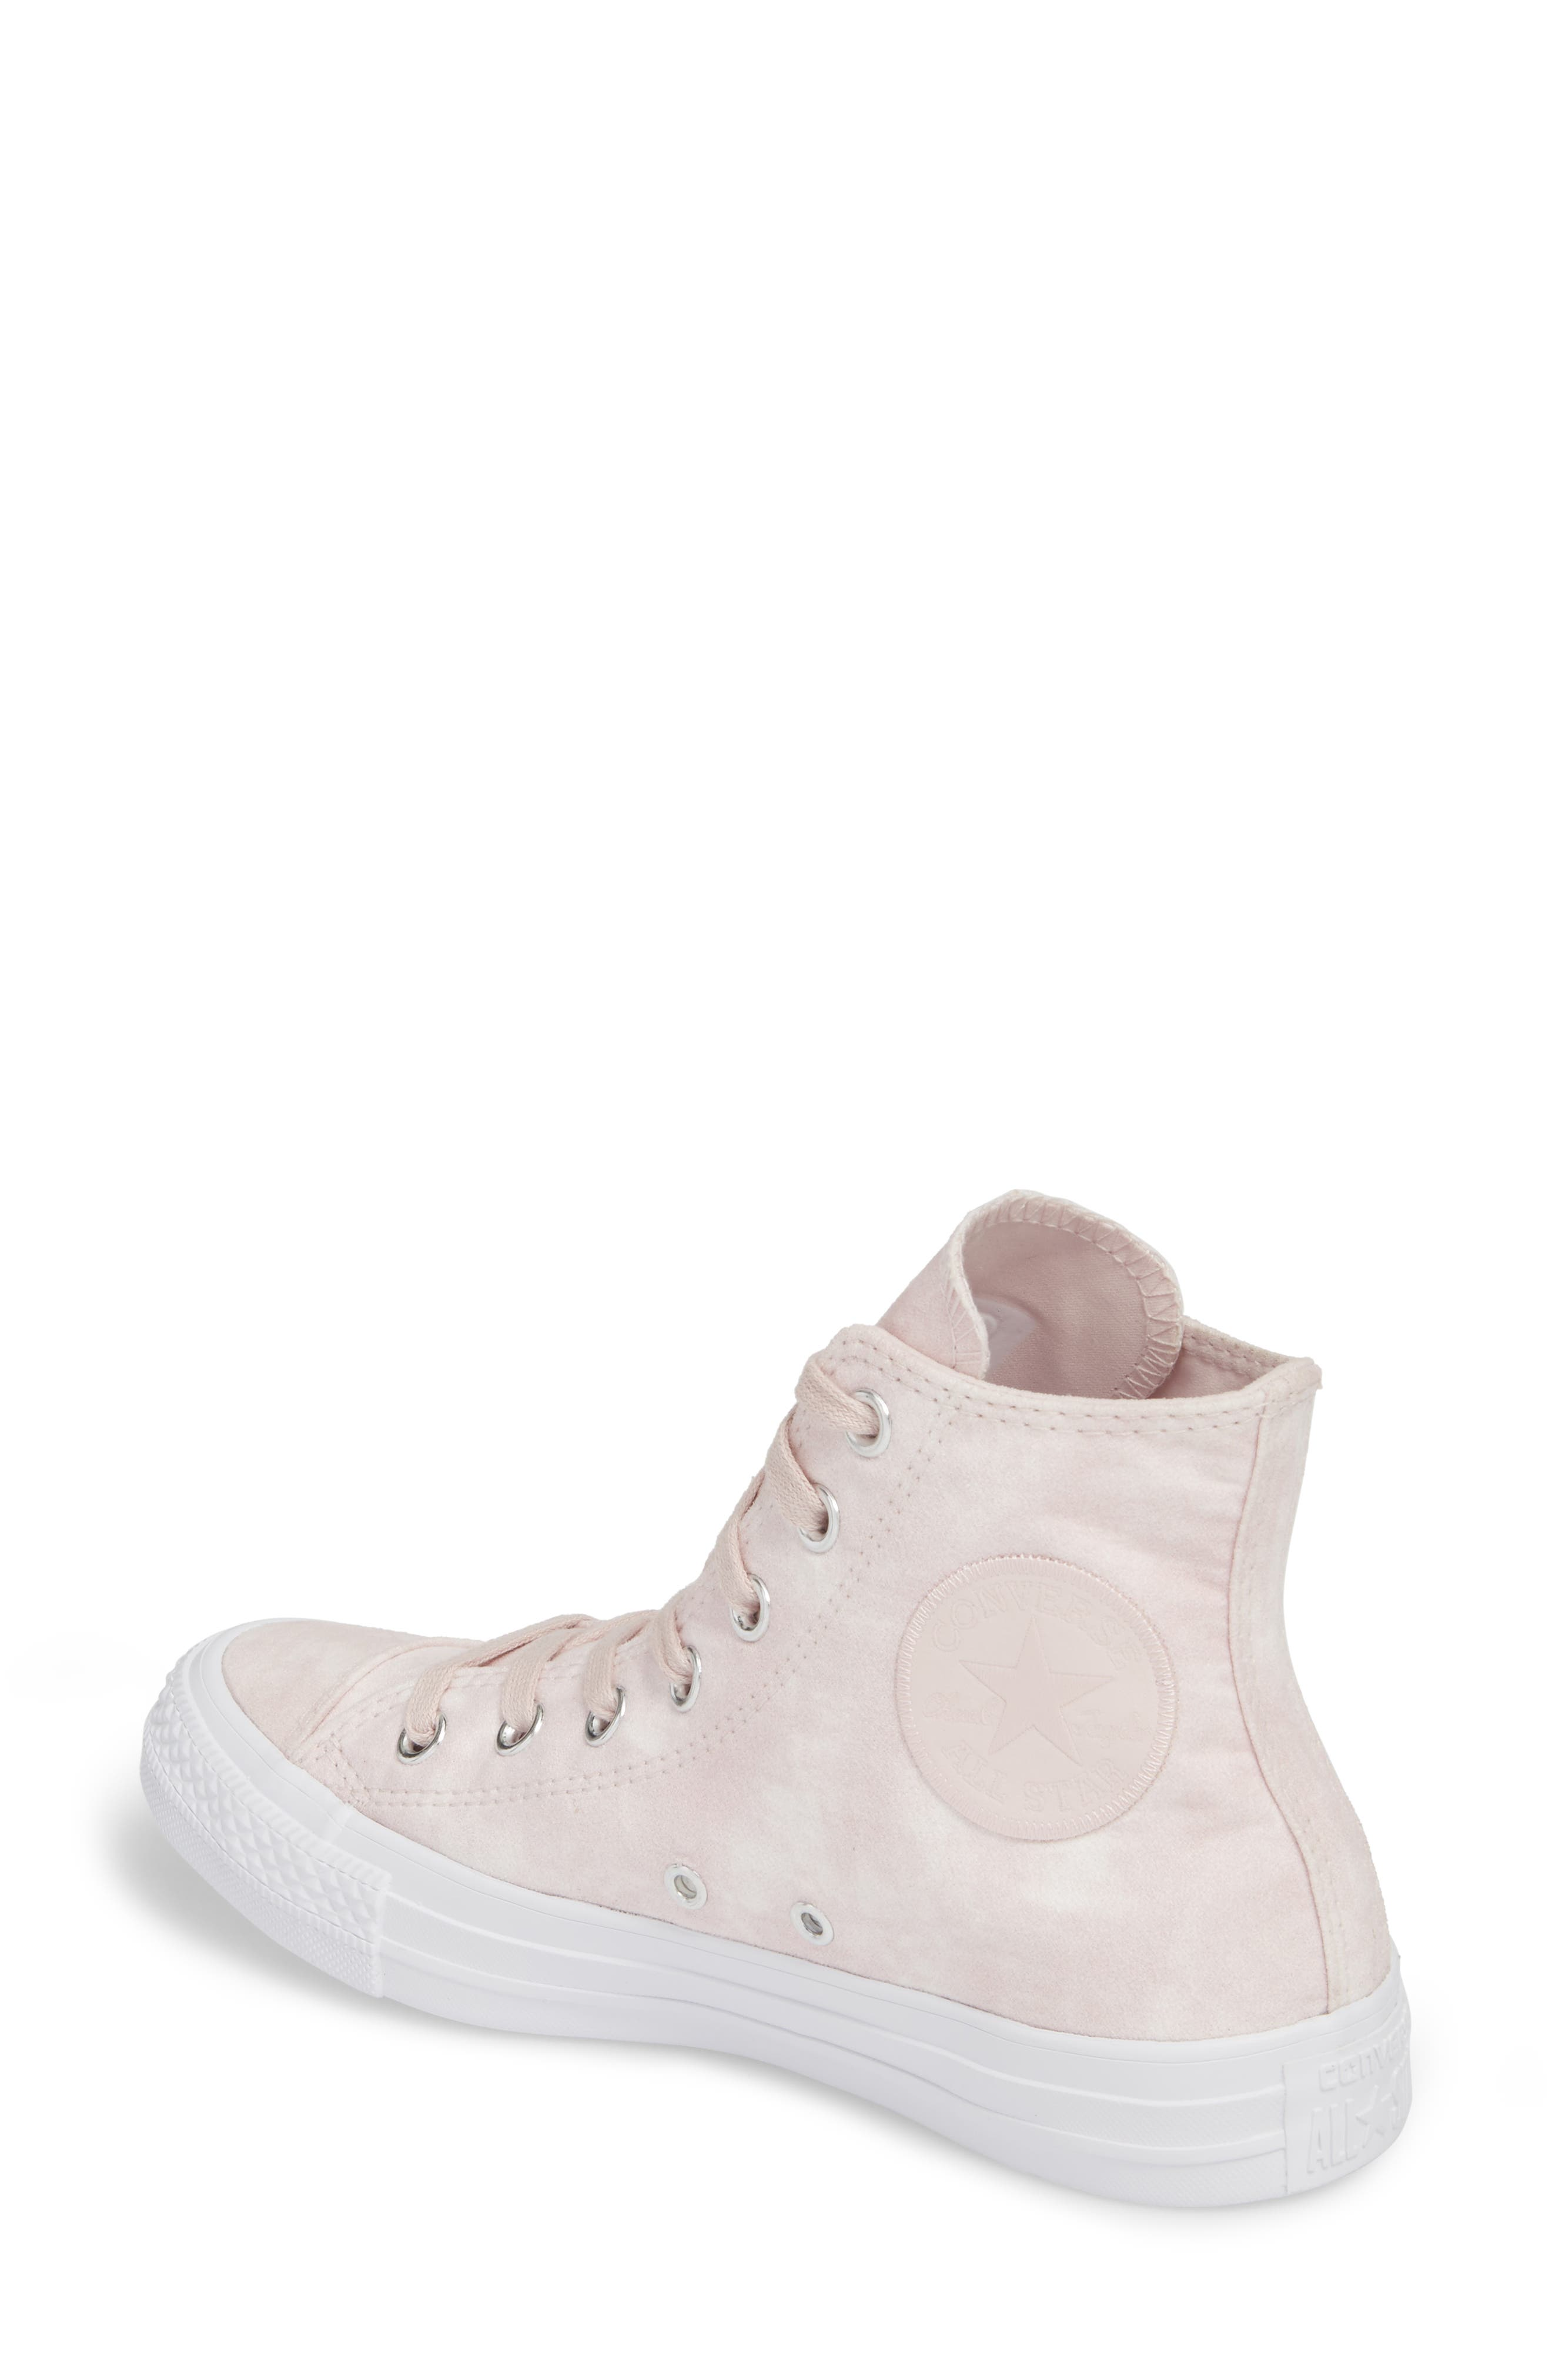 Chuck Taylor<sup>®</sup> All Star<sup>®</sup> Peached High Top Sneaker,                             Alternate thumbnail 2, color,                             Barely Rose